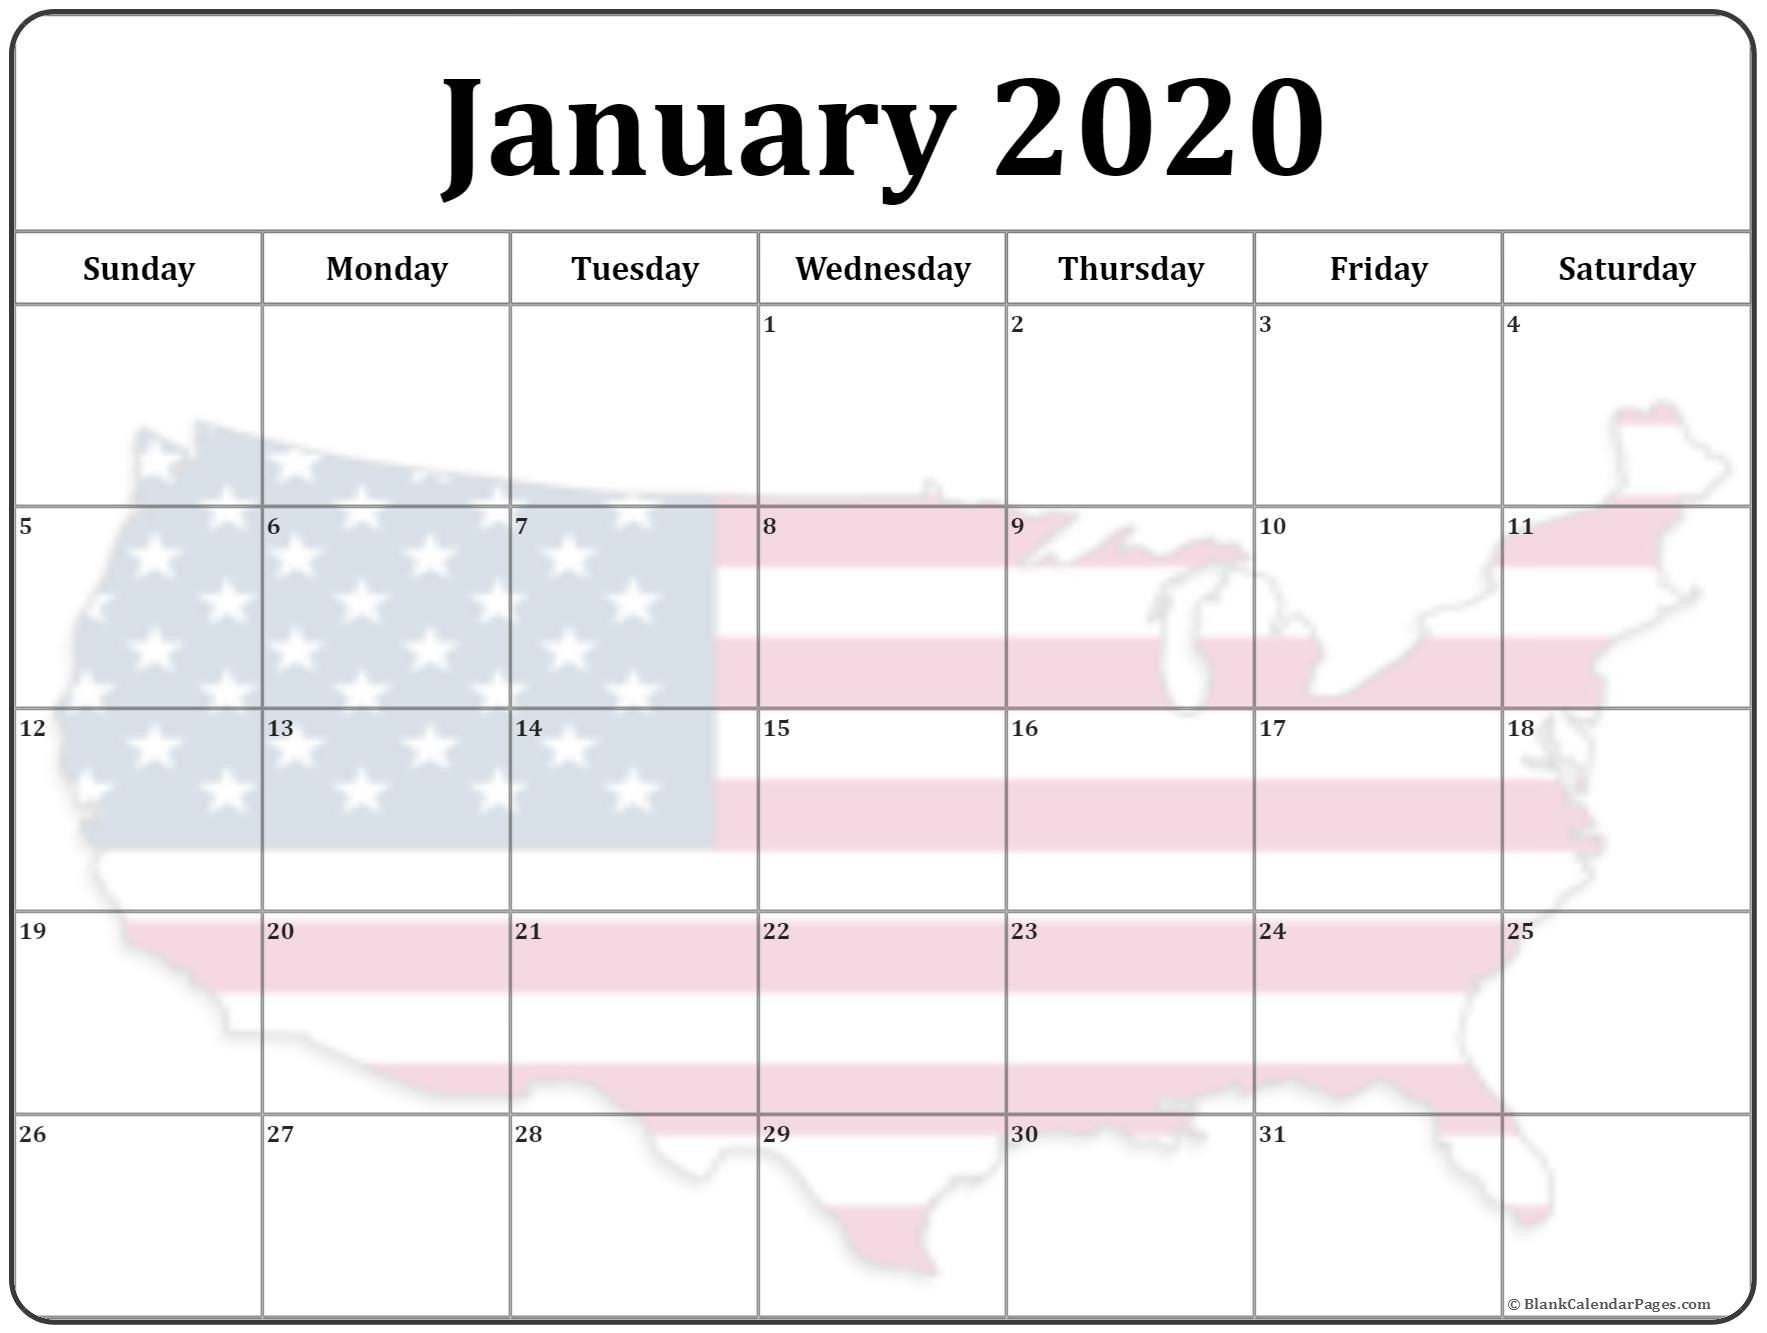 Printable January Calendar 2020 Collection Of January 2020 Photo Calendars with Image Filters